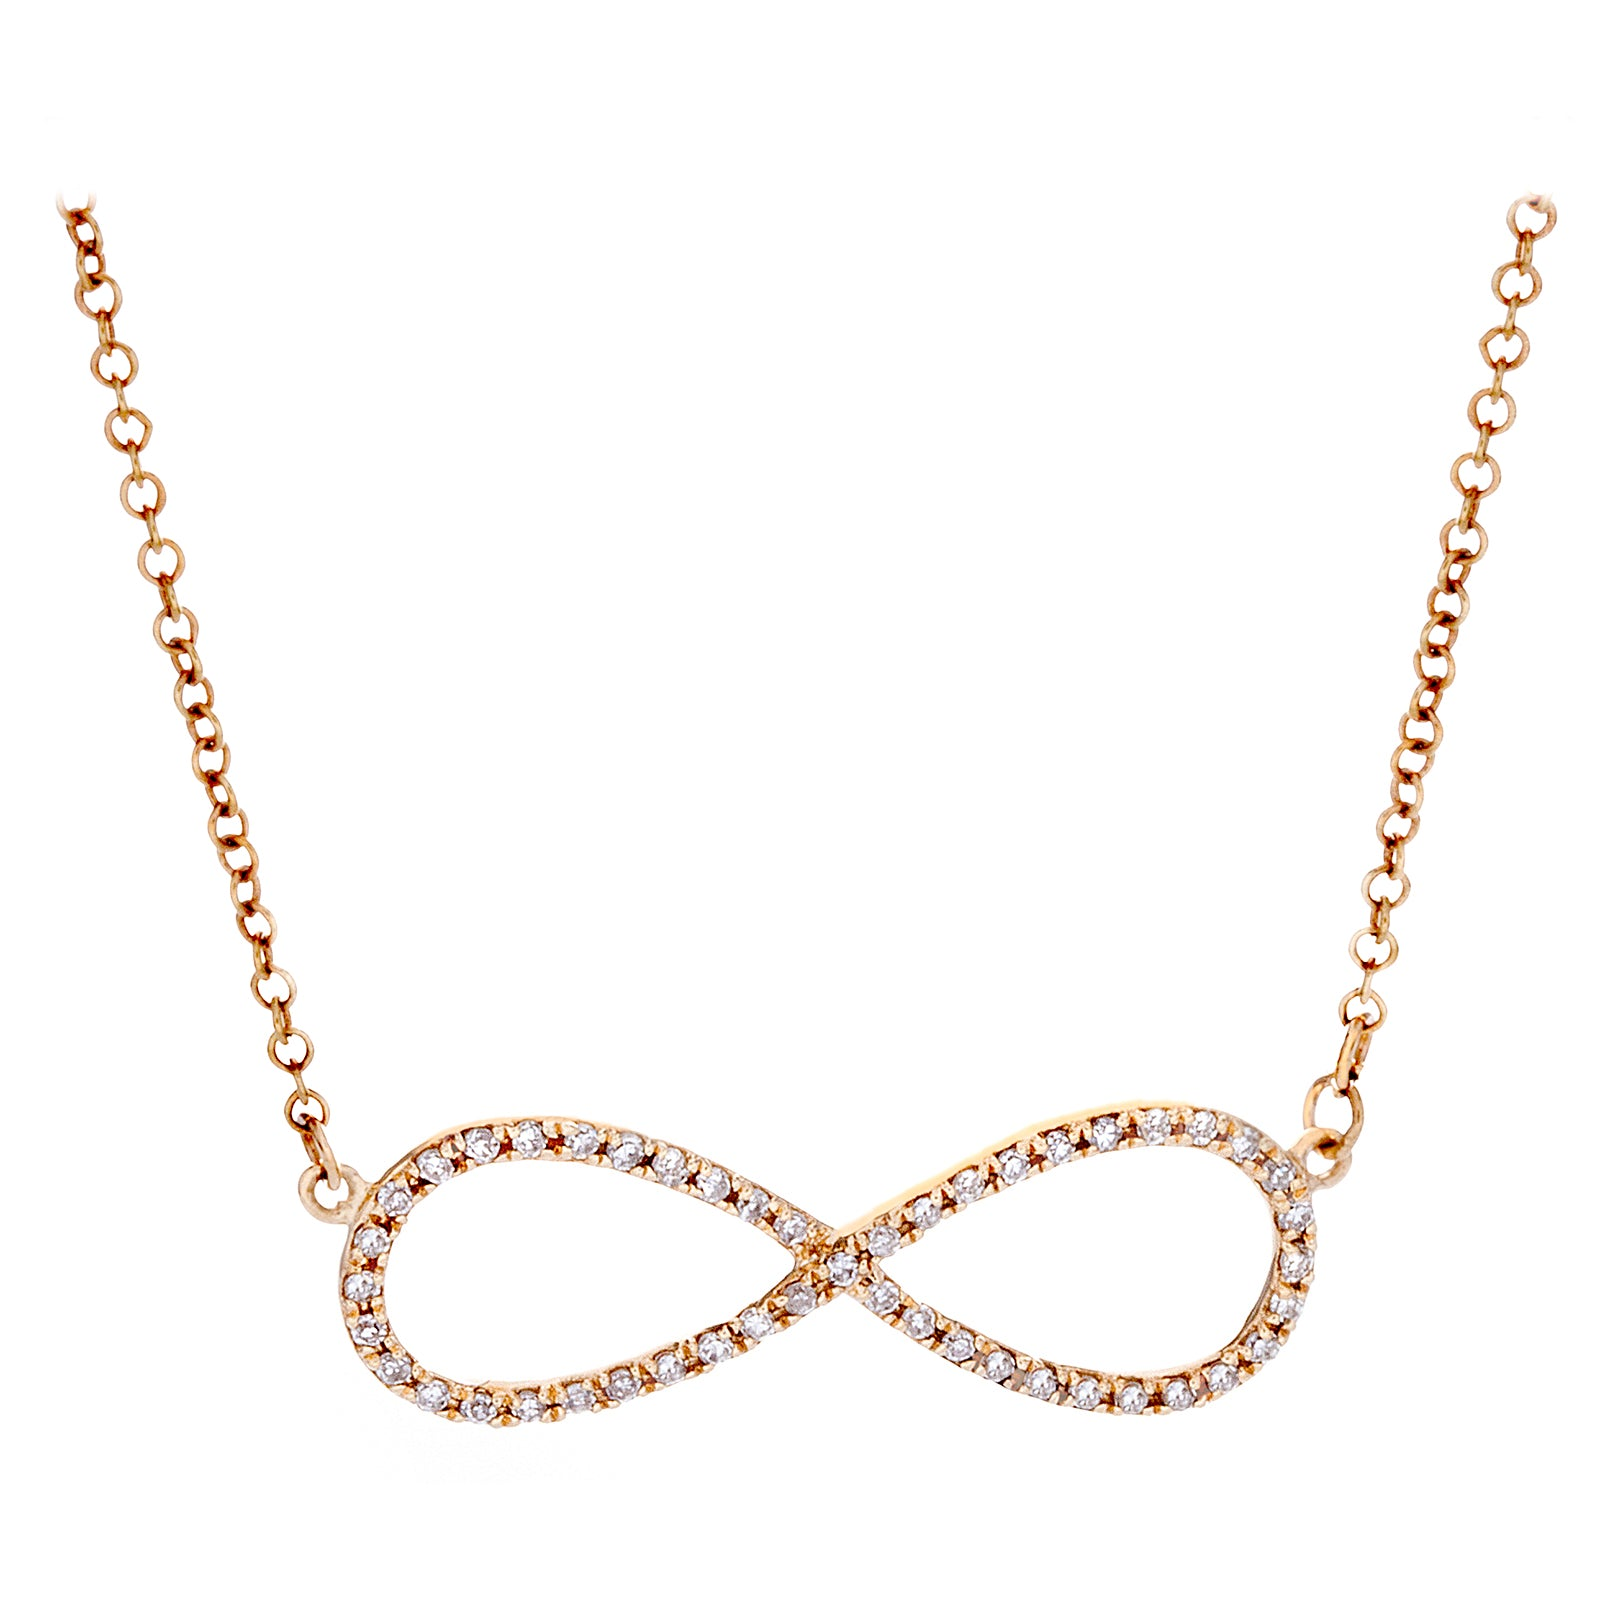 Diamonds & 14K Yellow Gold Infinity Necklace